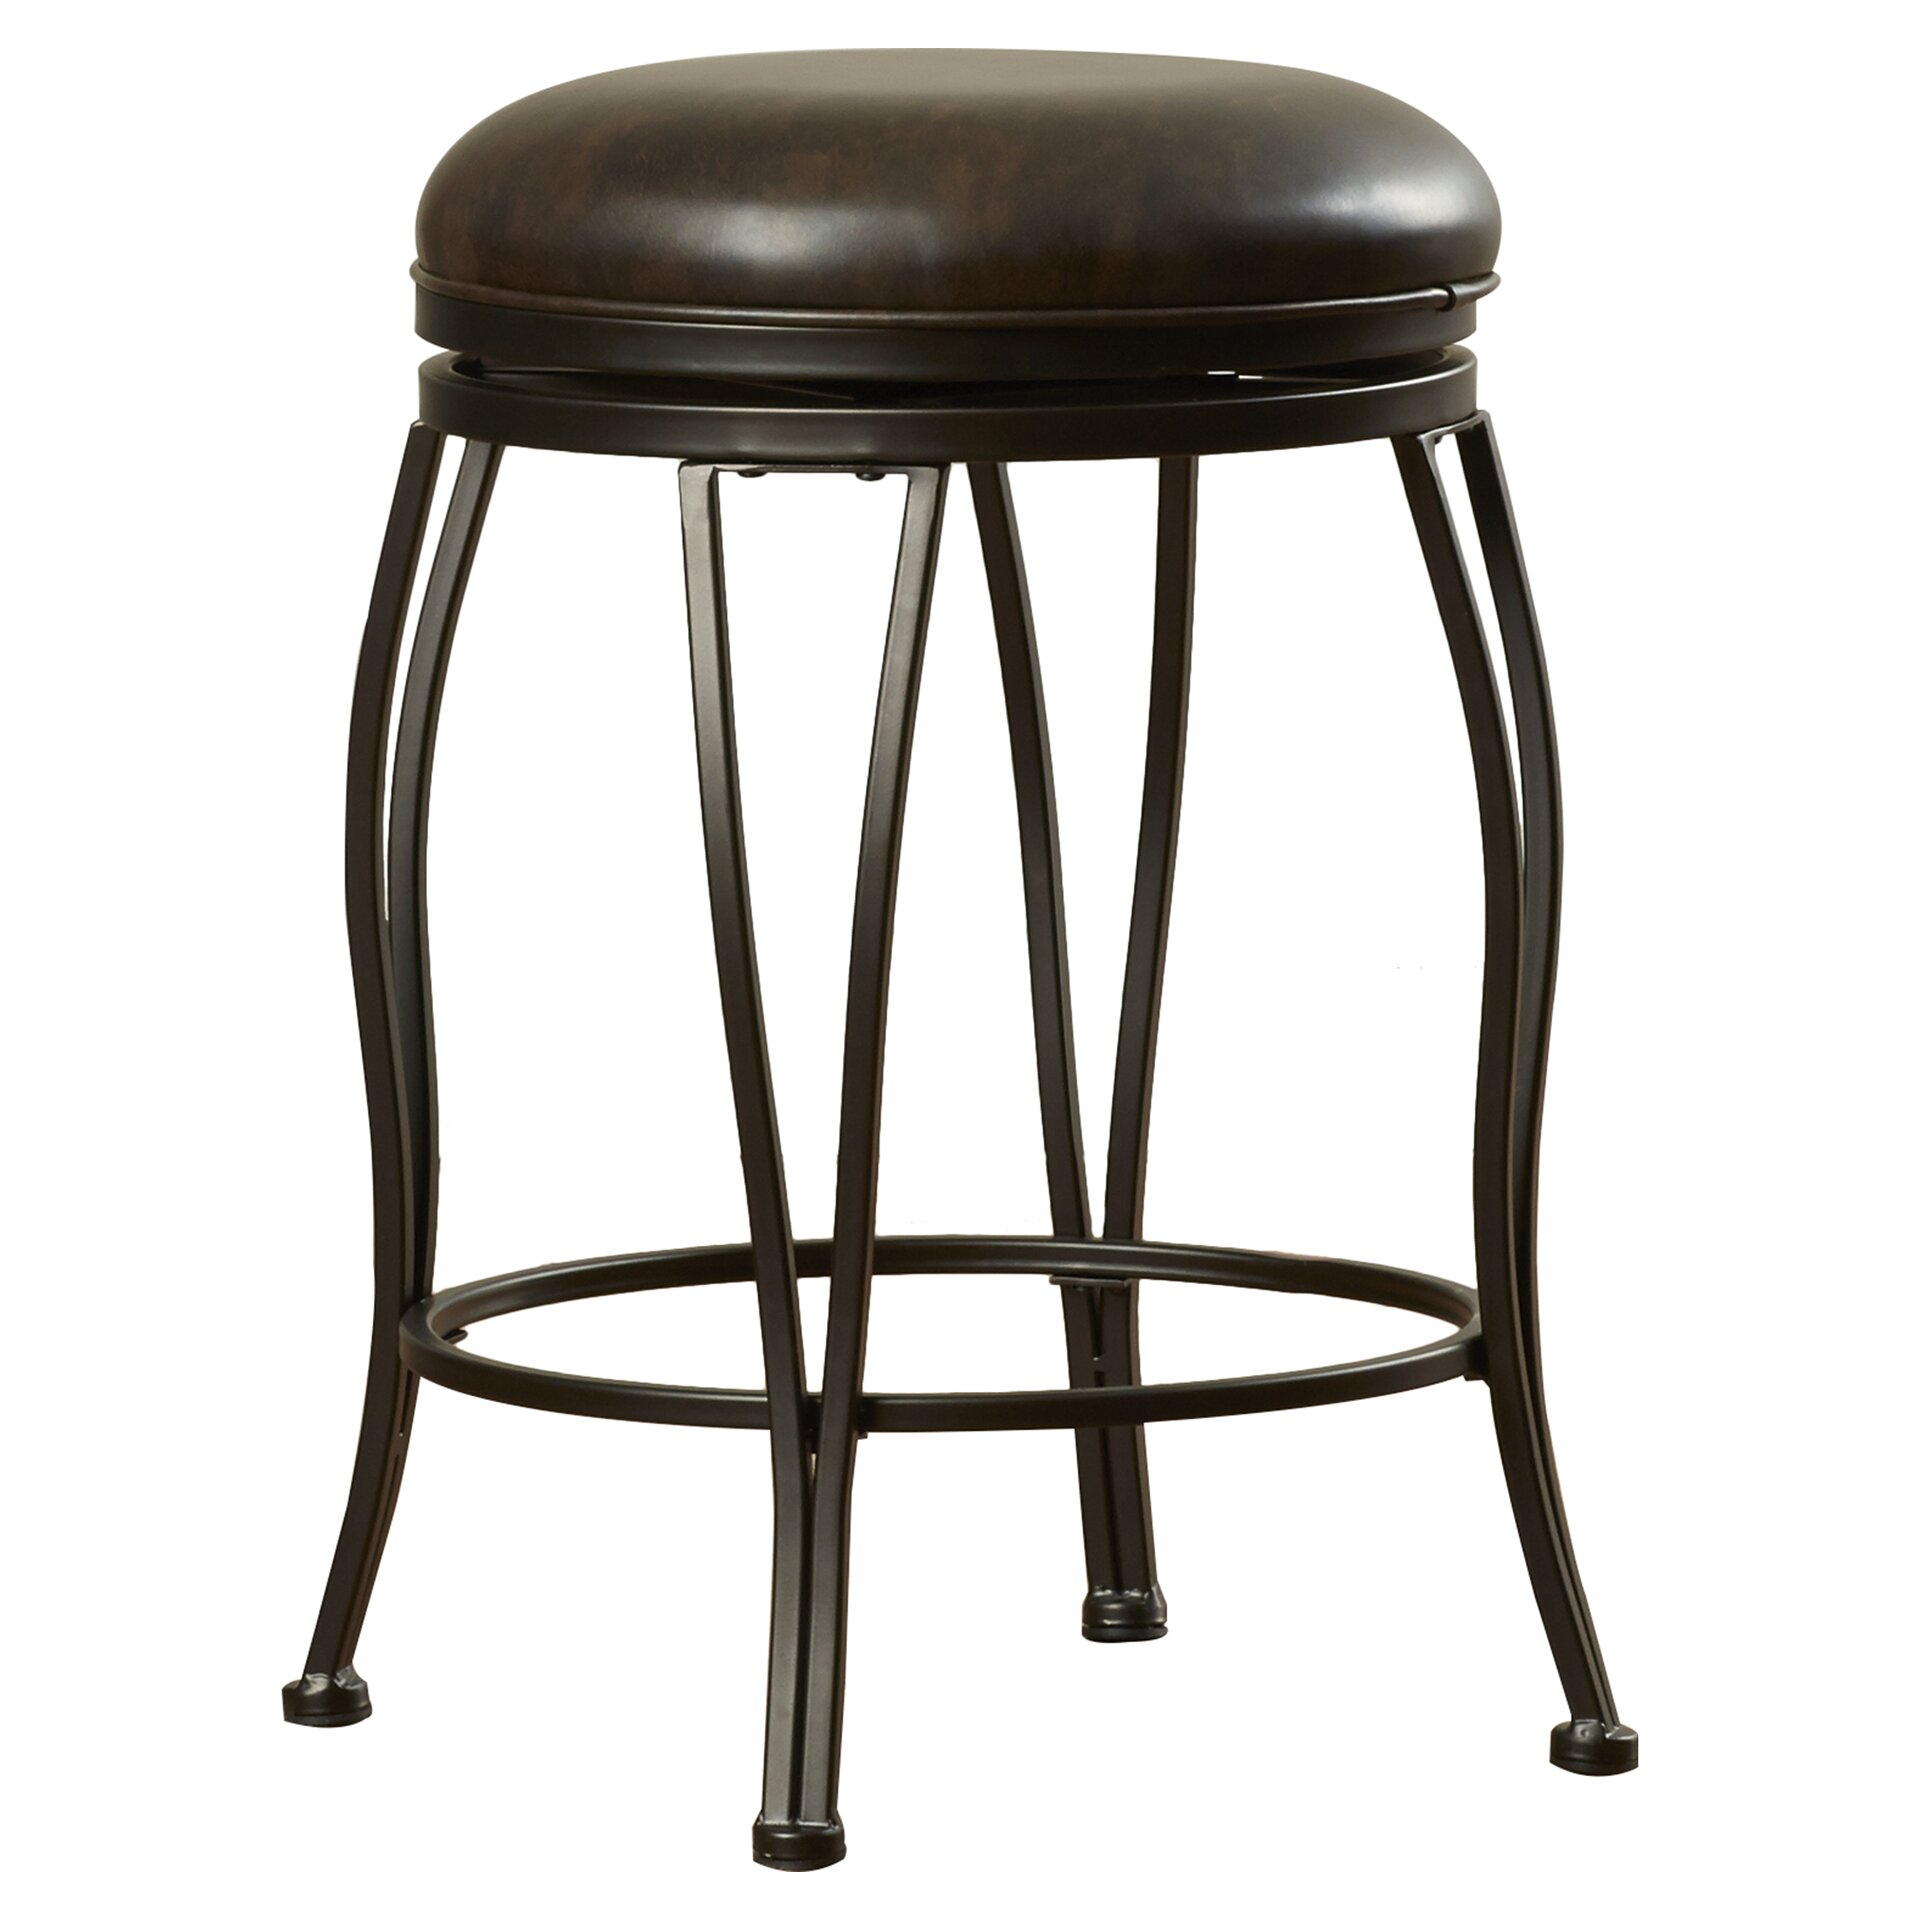 Alcott Hill Pagnano 24quot Swivel Bar Stool with Cushion  : Alcott Hill Pagnano 24 Swivel Bar Stool with Cushion ALCT3064 from www.wayfair.com size 1920 x 1920 jpeg 248kB